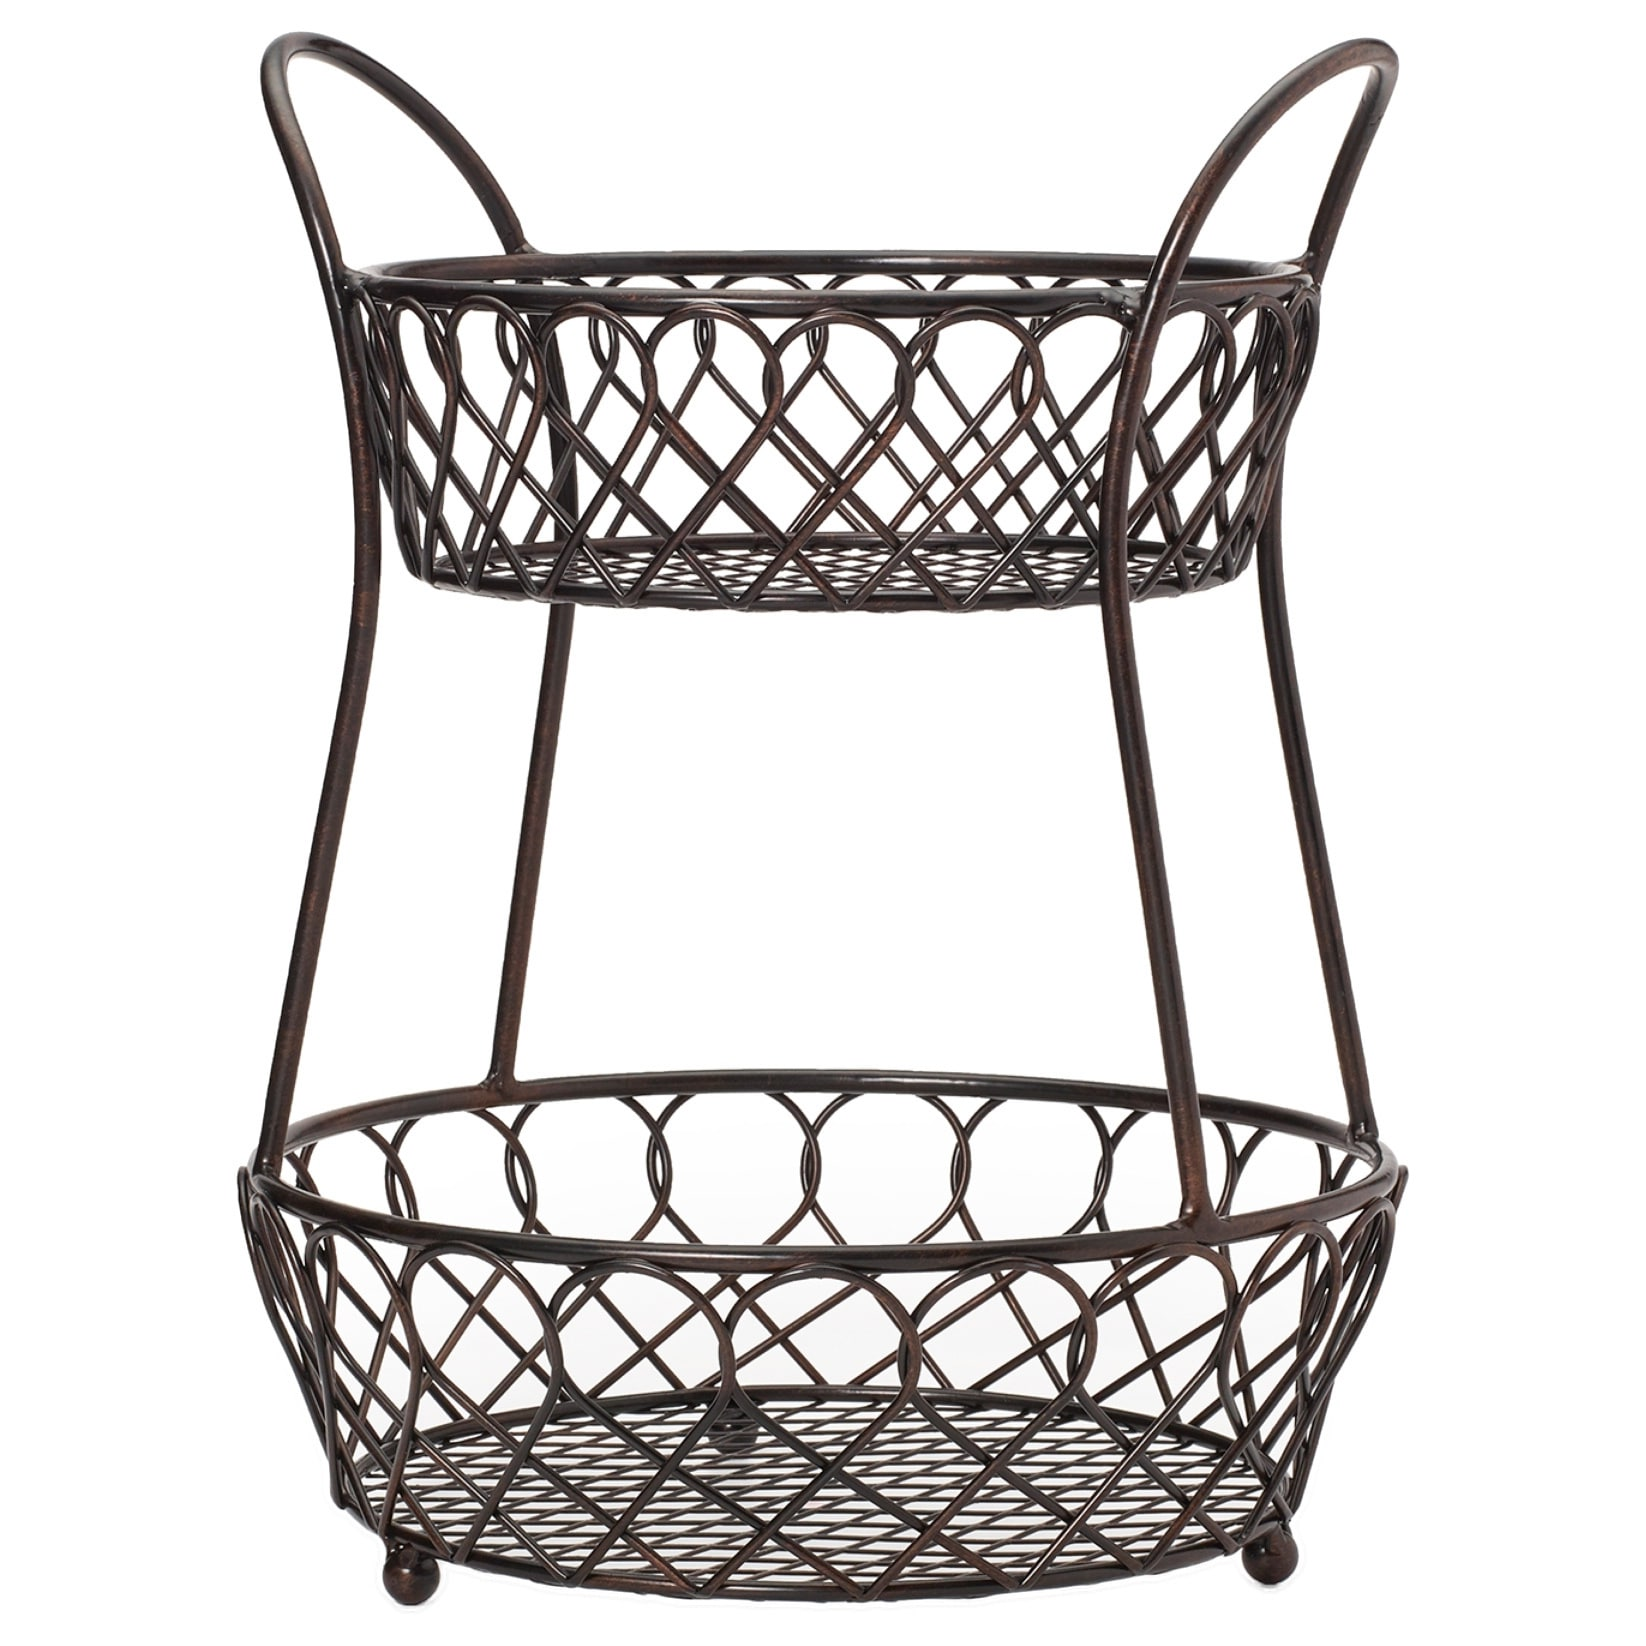 Gourmet Basic By Mikasa Loop And Lattice 2 Tier Basket Antique Black Finis  - Free Shipping On Orders Over $45 - Overstock.com - 17709275